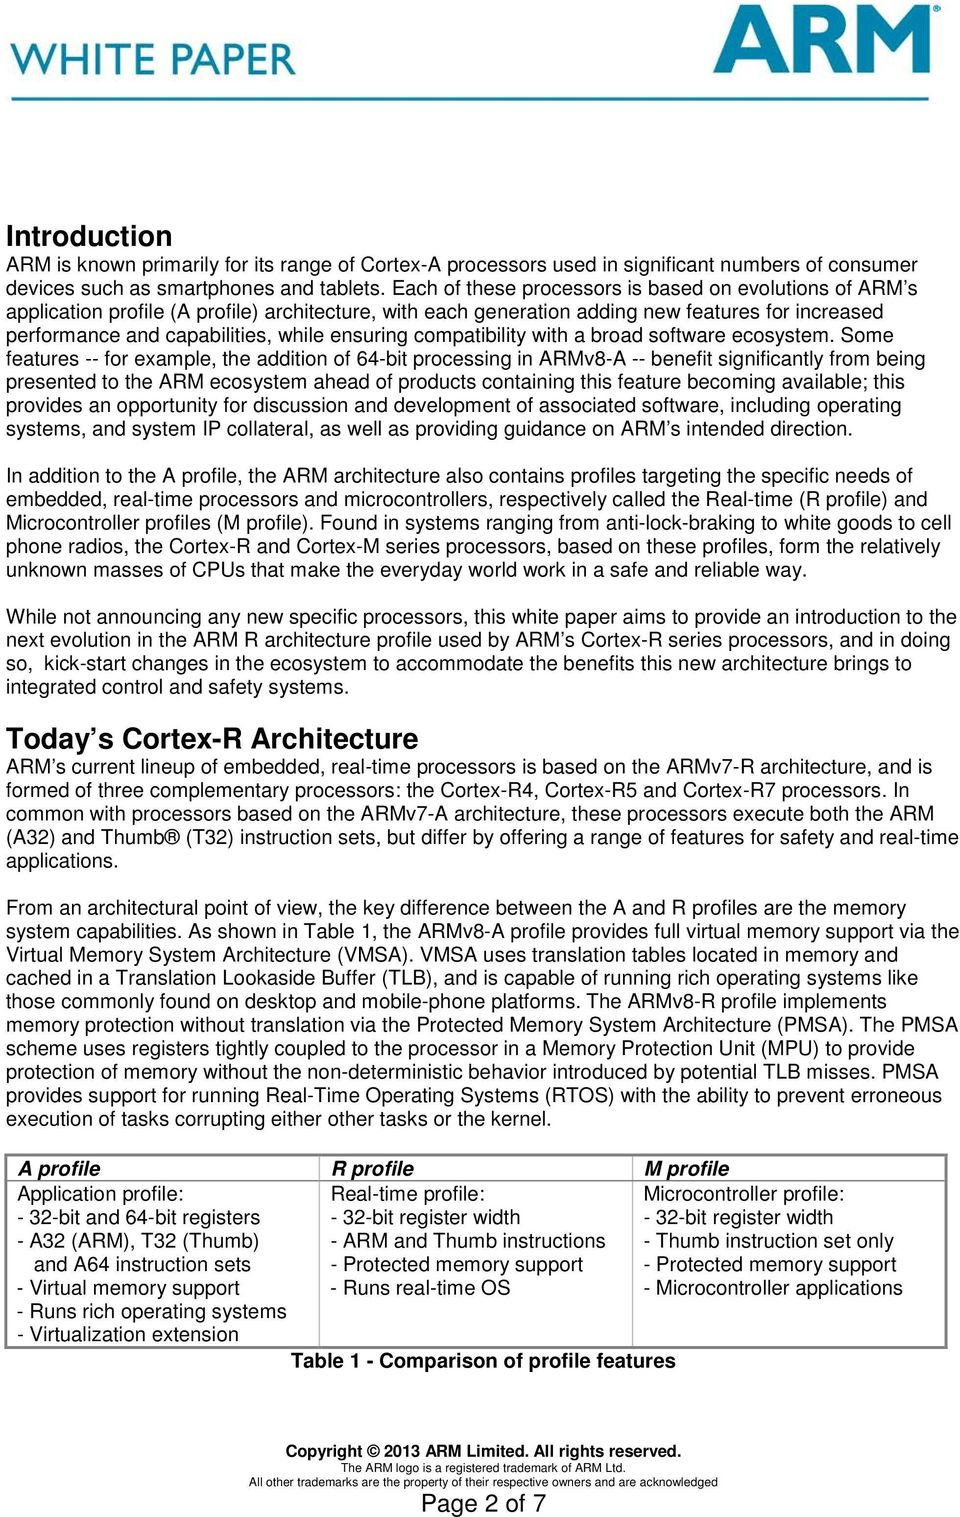 ARM Cortex-R Architecture - PDF